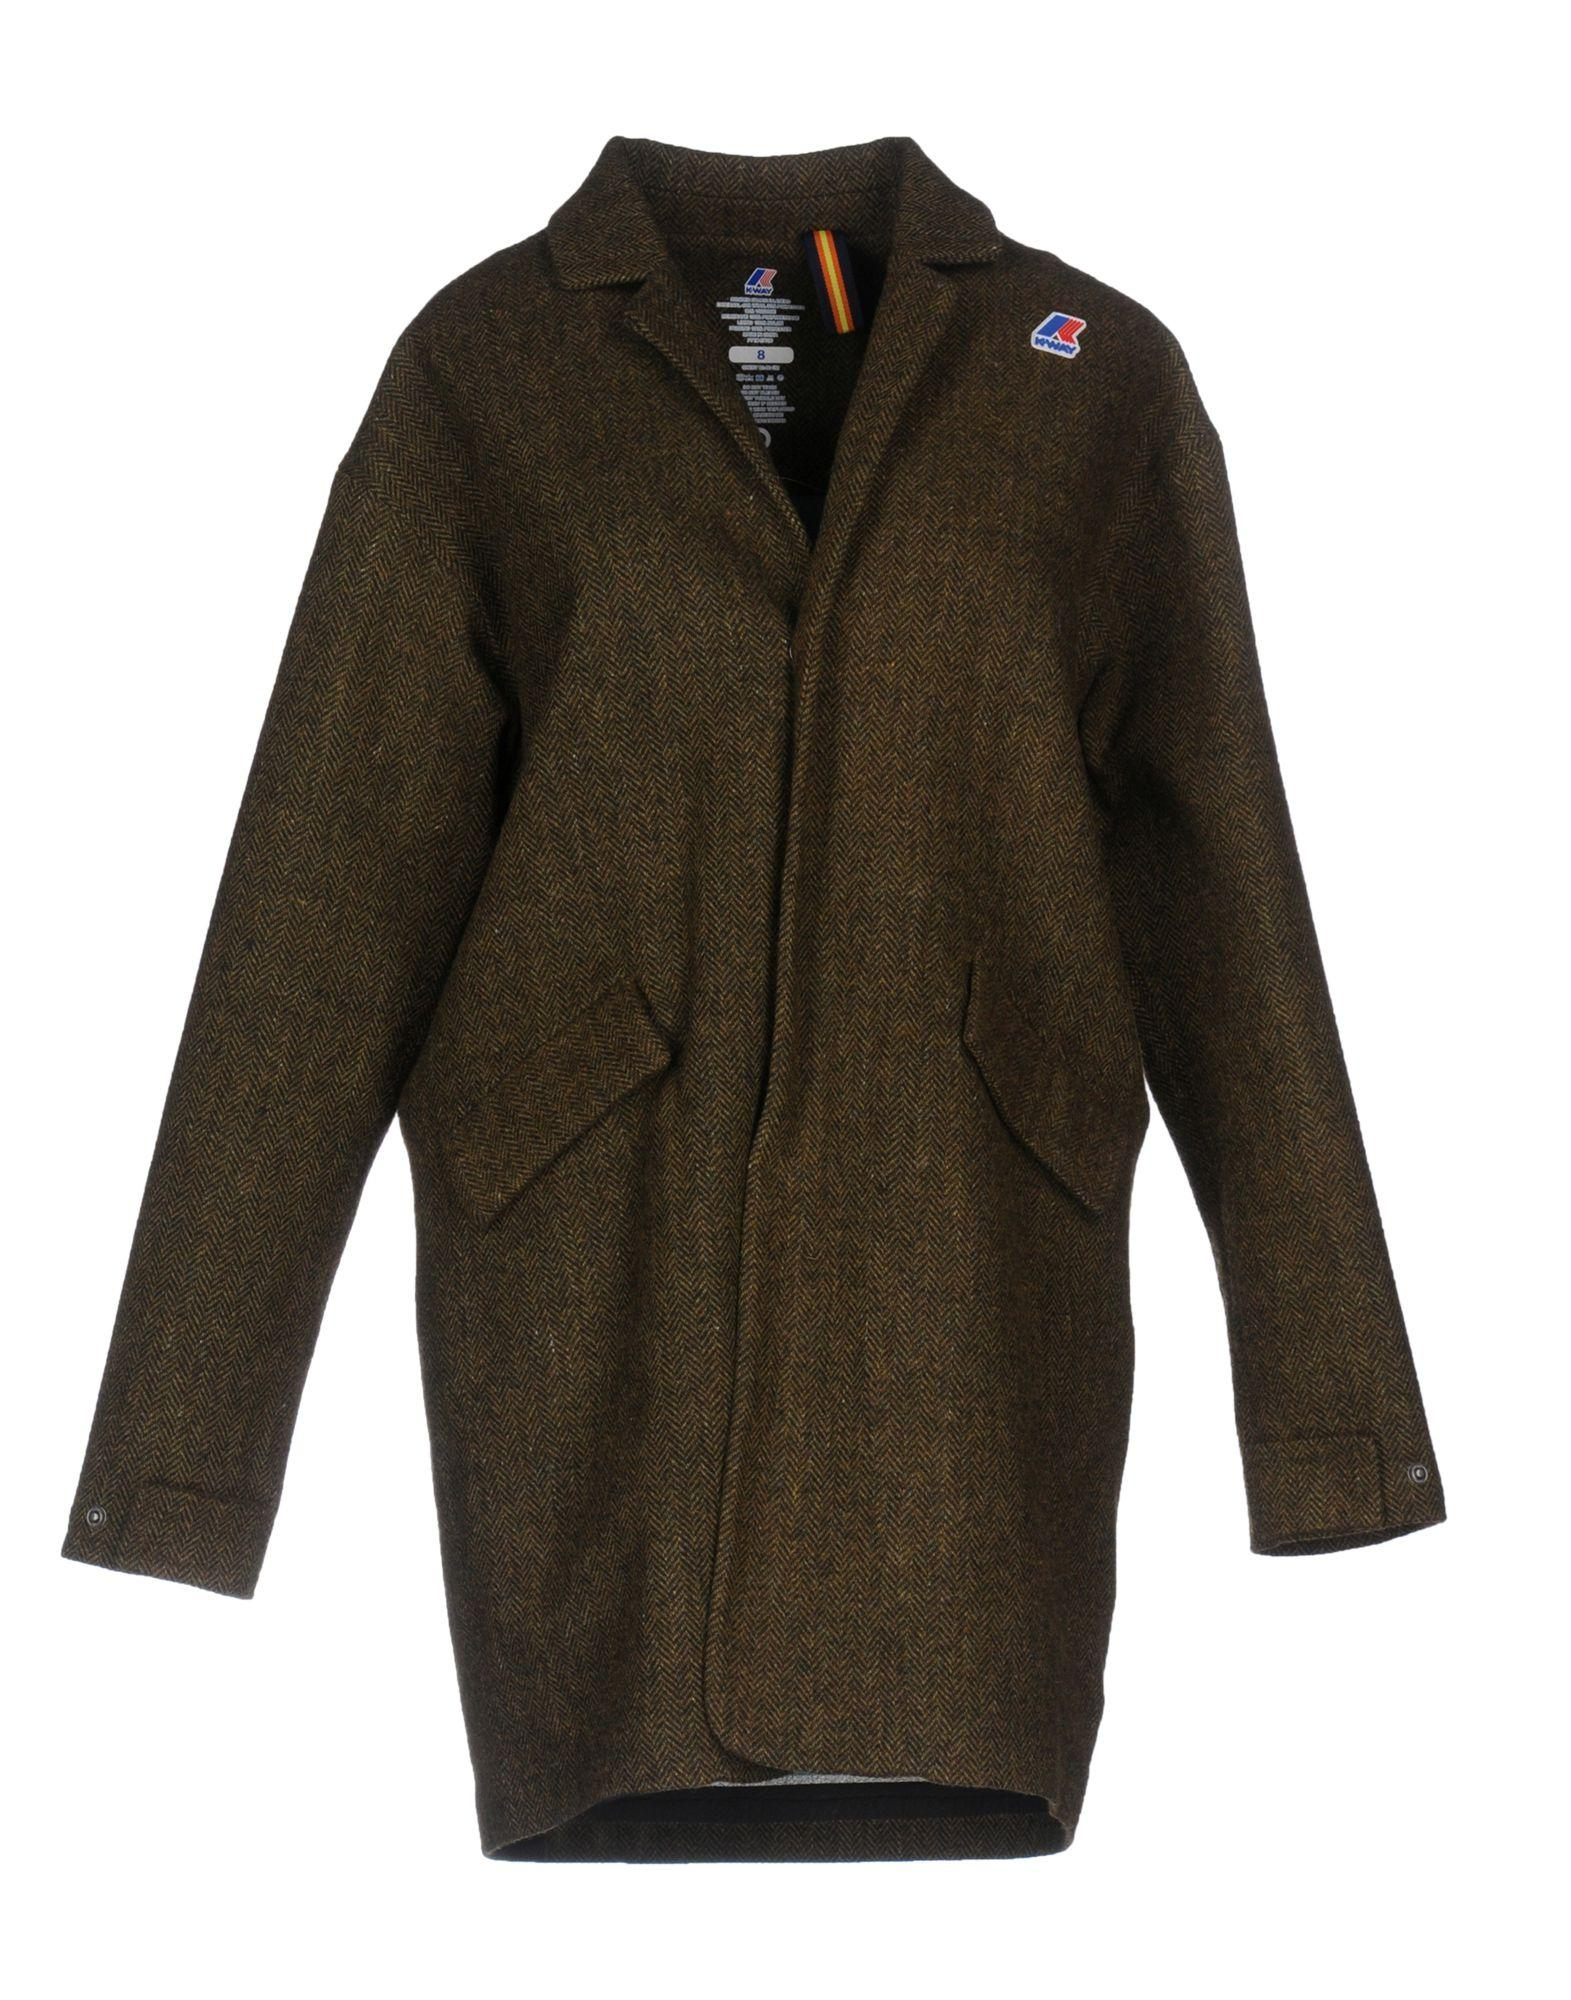 K-way Coats In Military Green